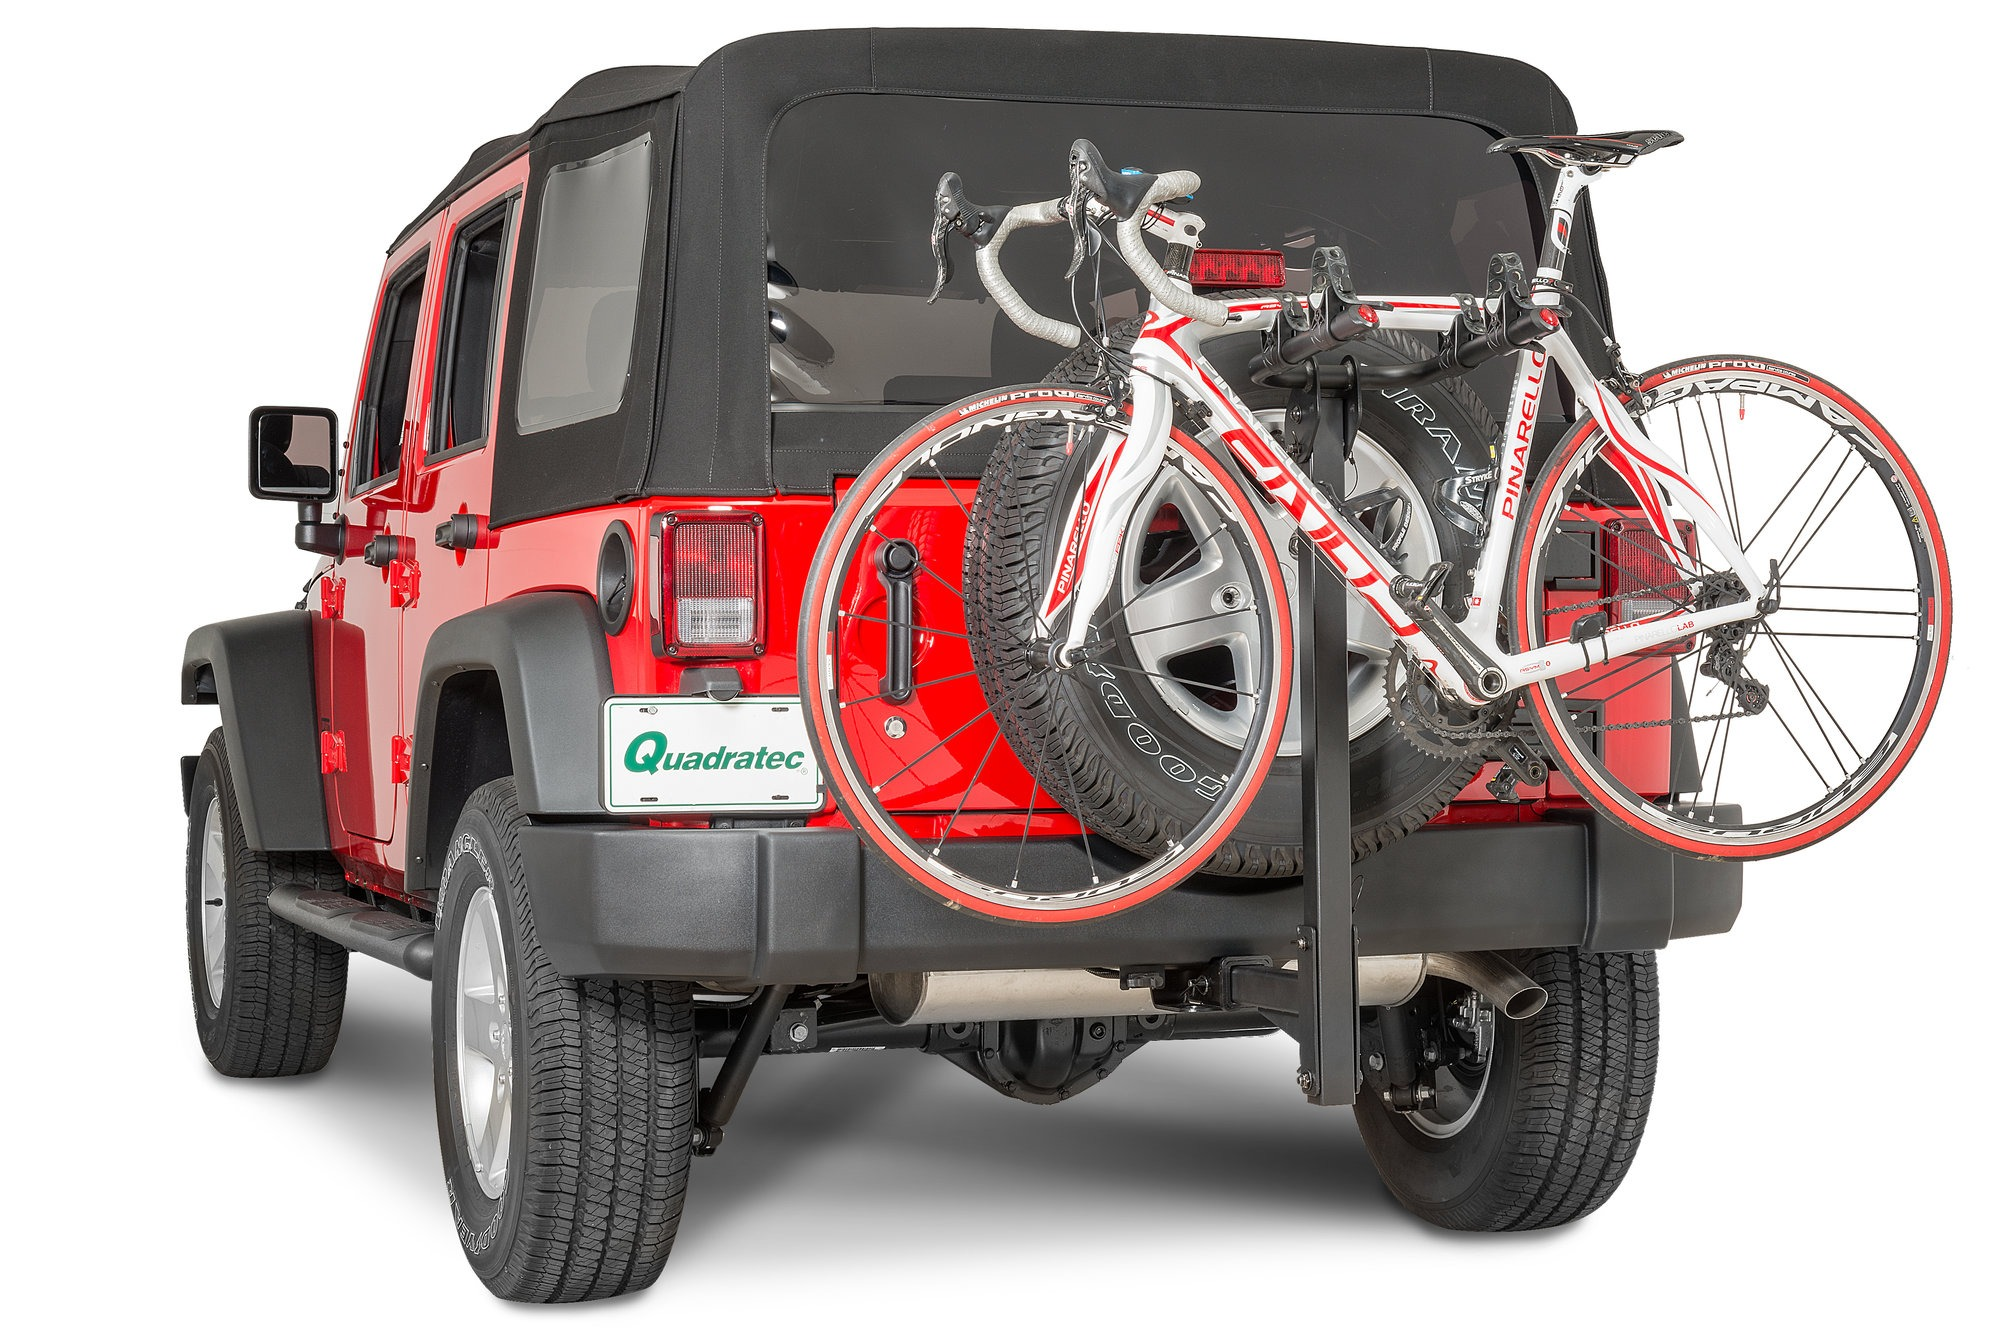 Jeep Wrangler Bike Rack >> Top 5 Jeep Wrangler Bike Racks For 2020 Compared Bestfordriver